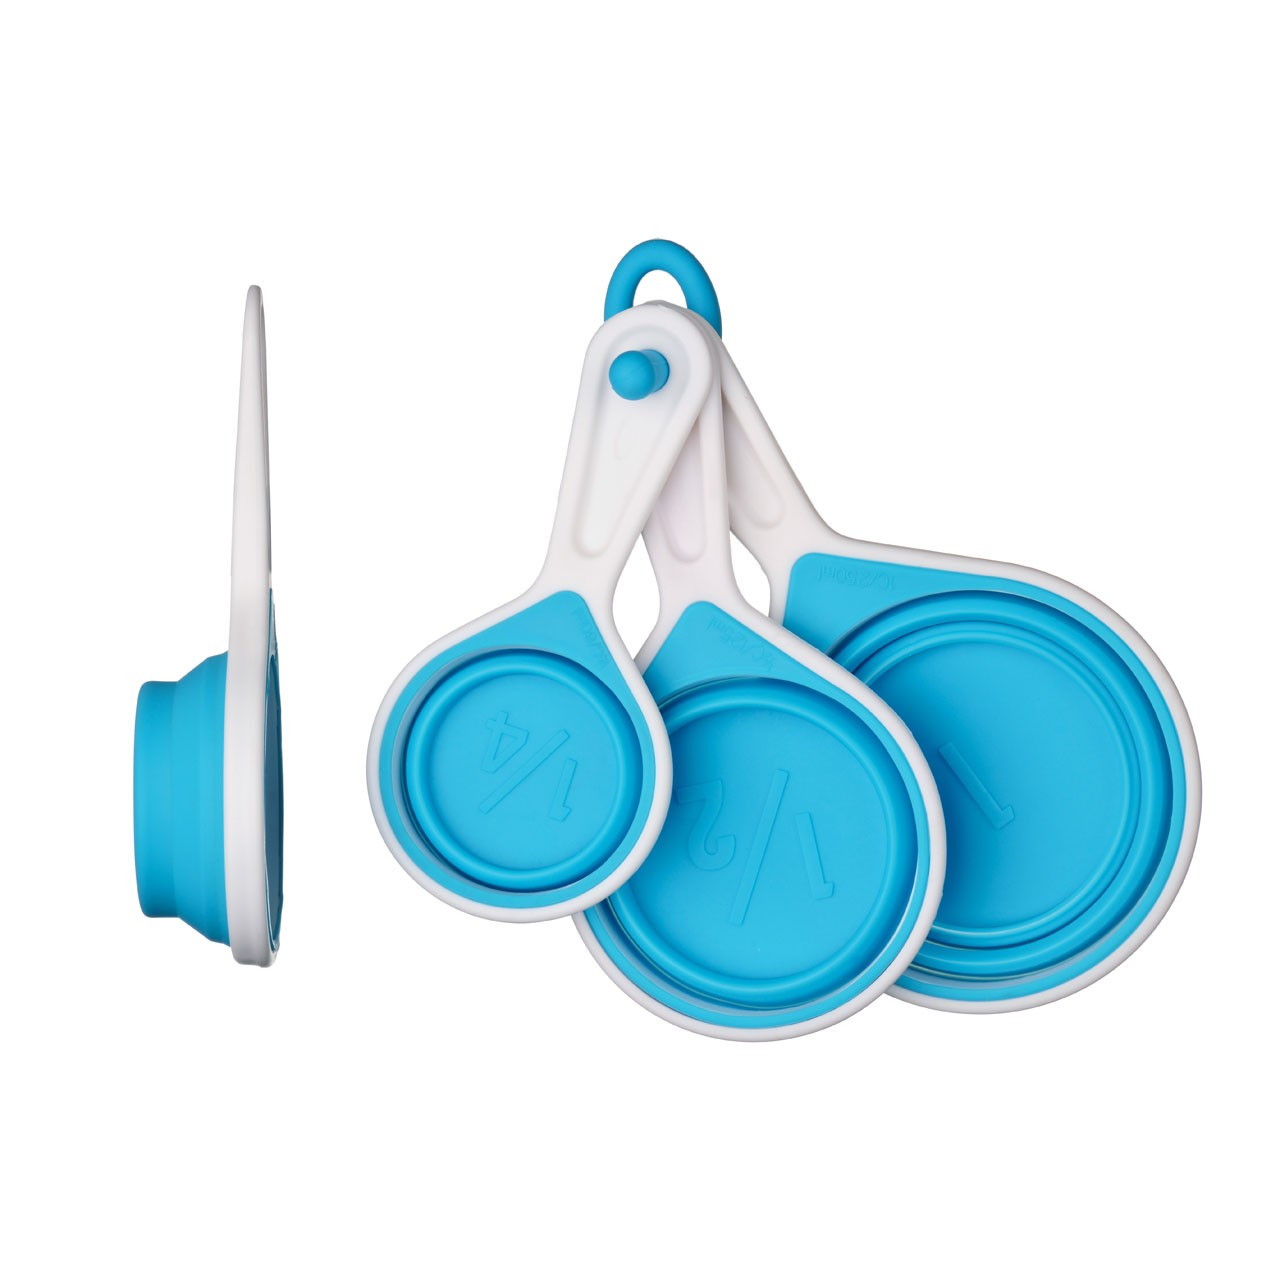 Zing Measuring Cups - Set of 4 - Blue